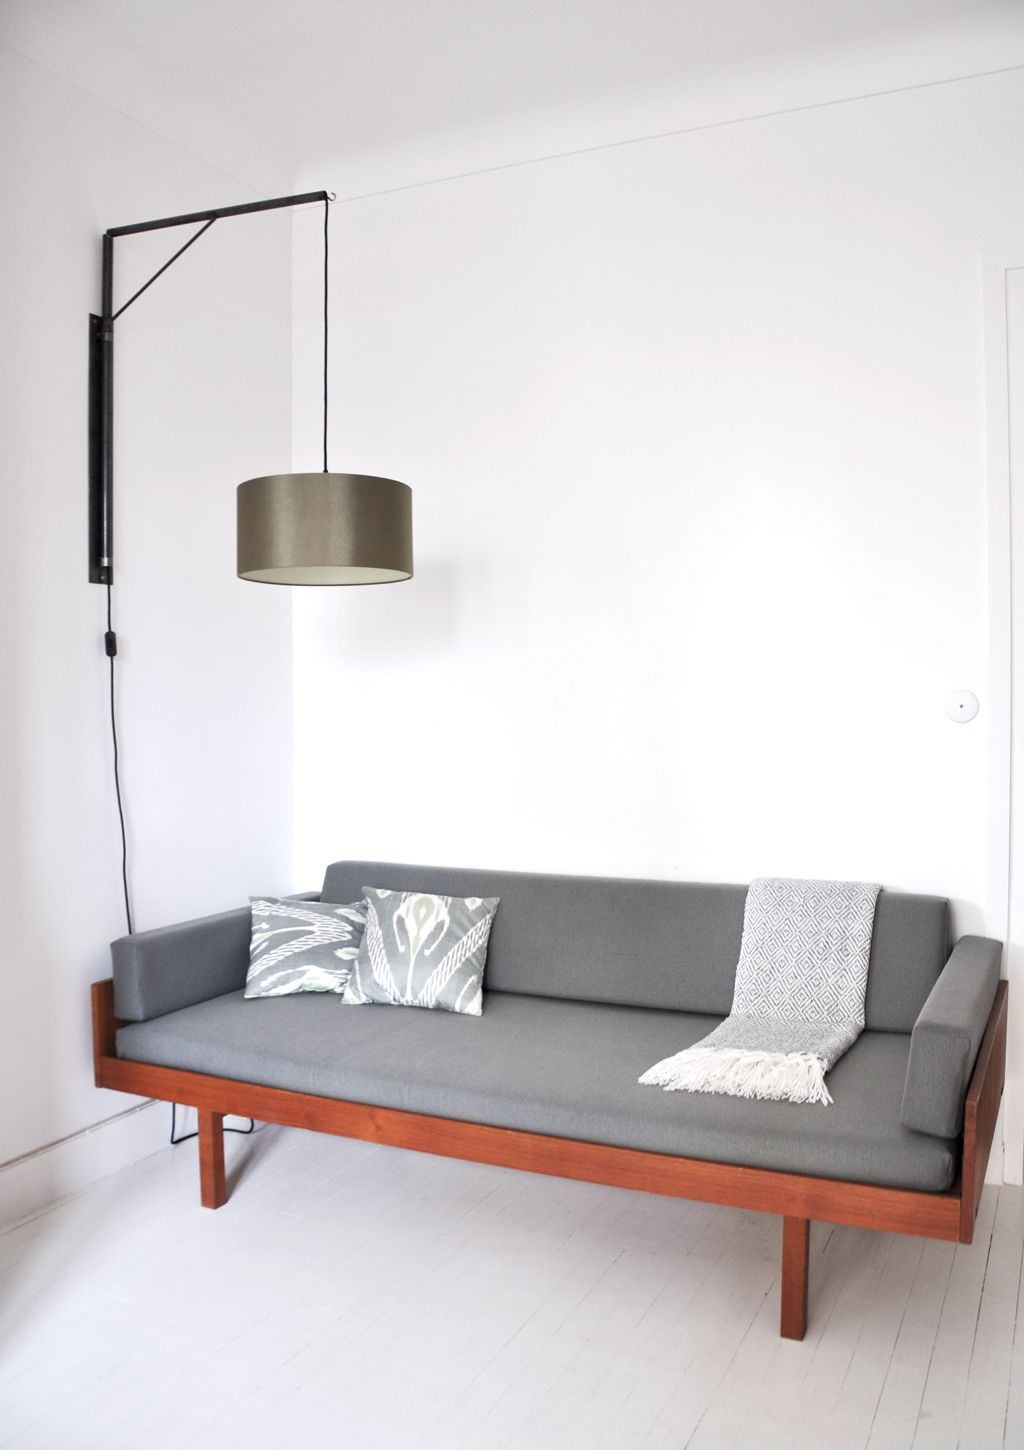 daybed horsn s made in denmark horsens design. Black Bedroom Furniture Sets. Home Design Ideas